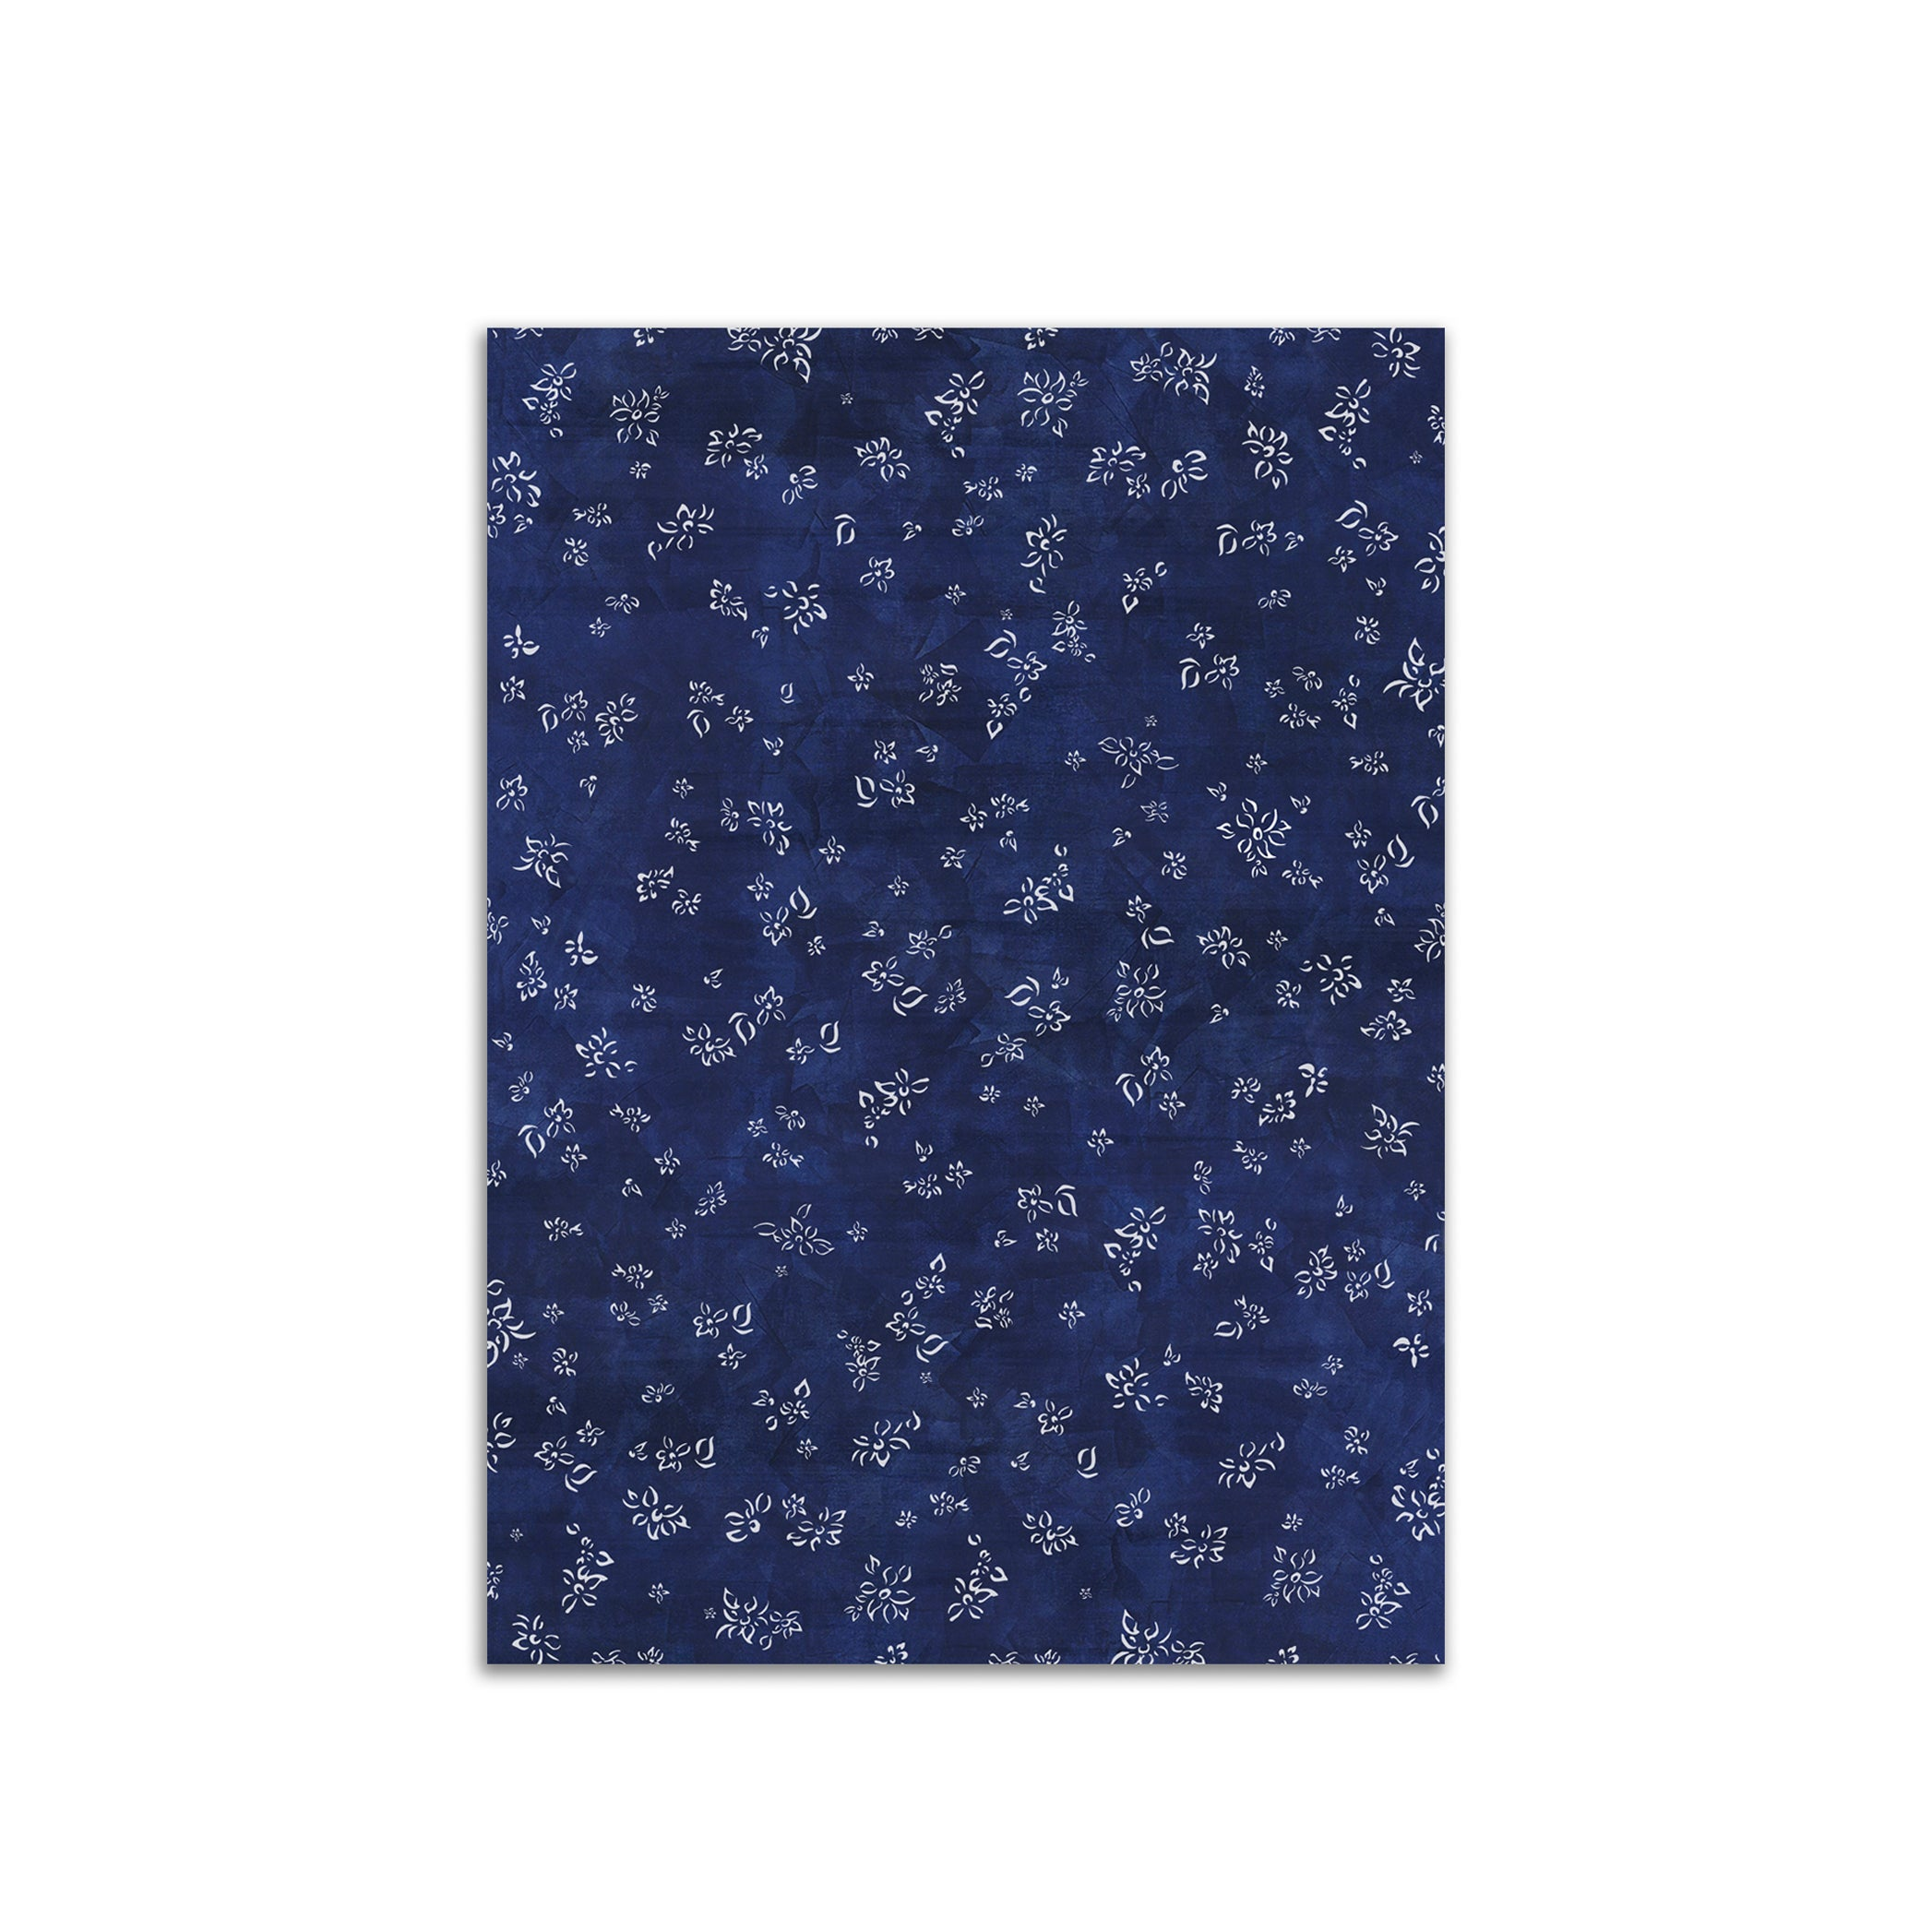 S&B Falling Flower Wrapping Paper in Midnight Blue, Roll of 4